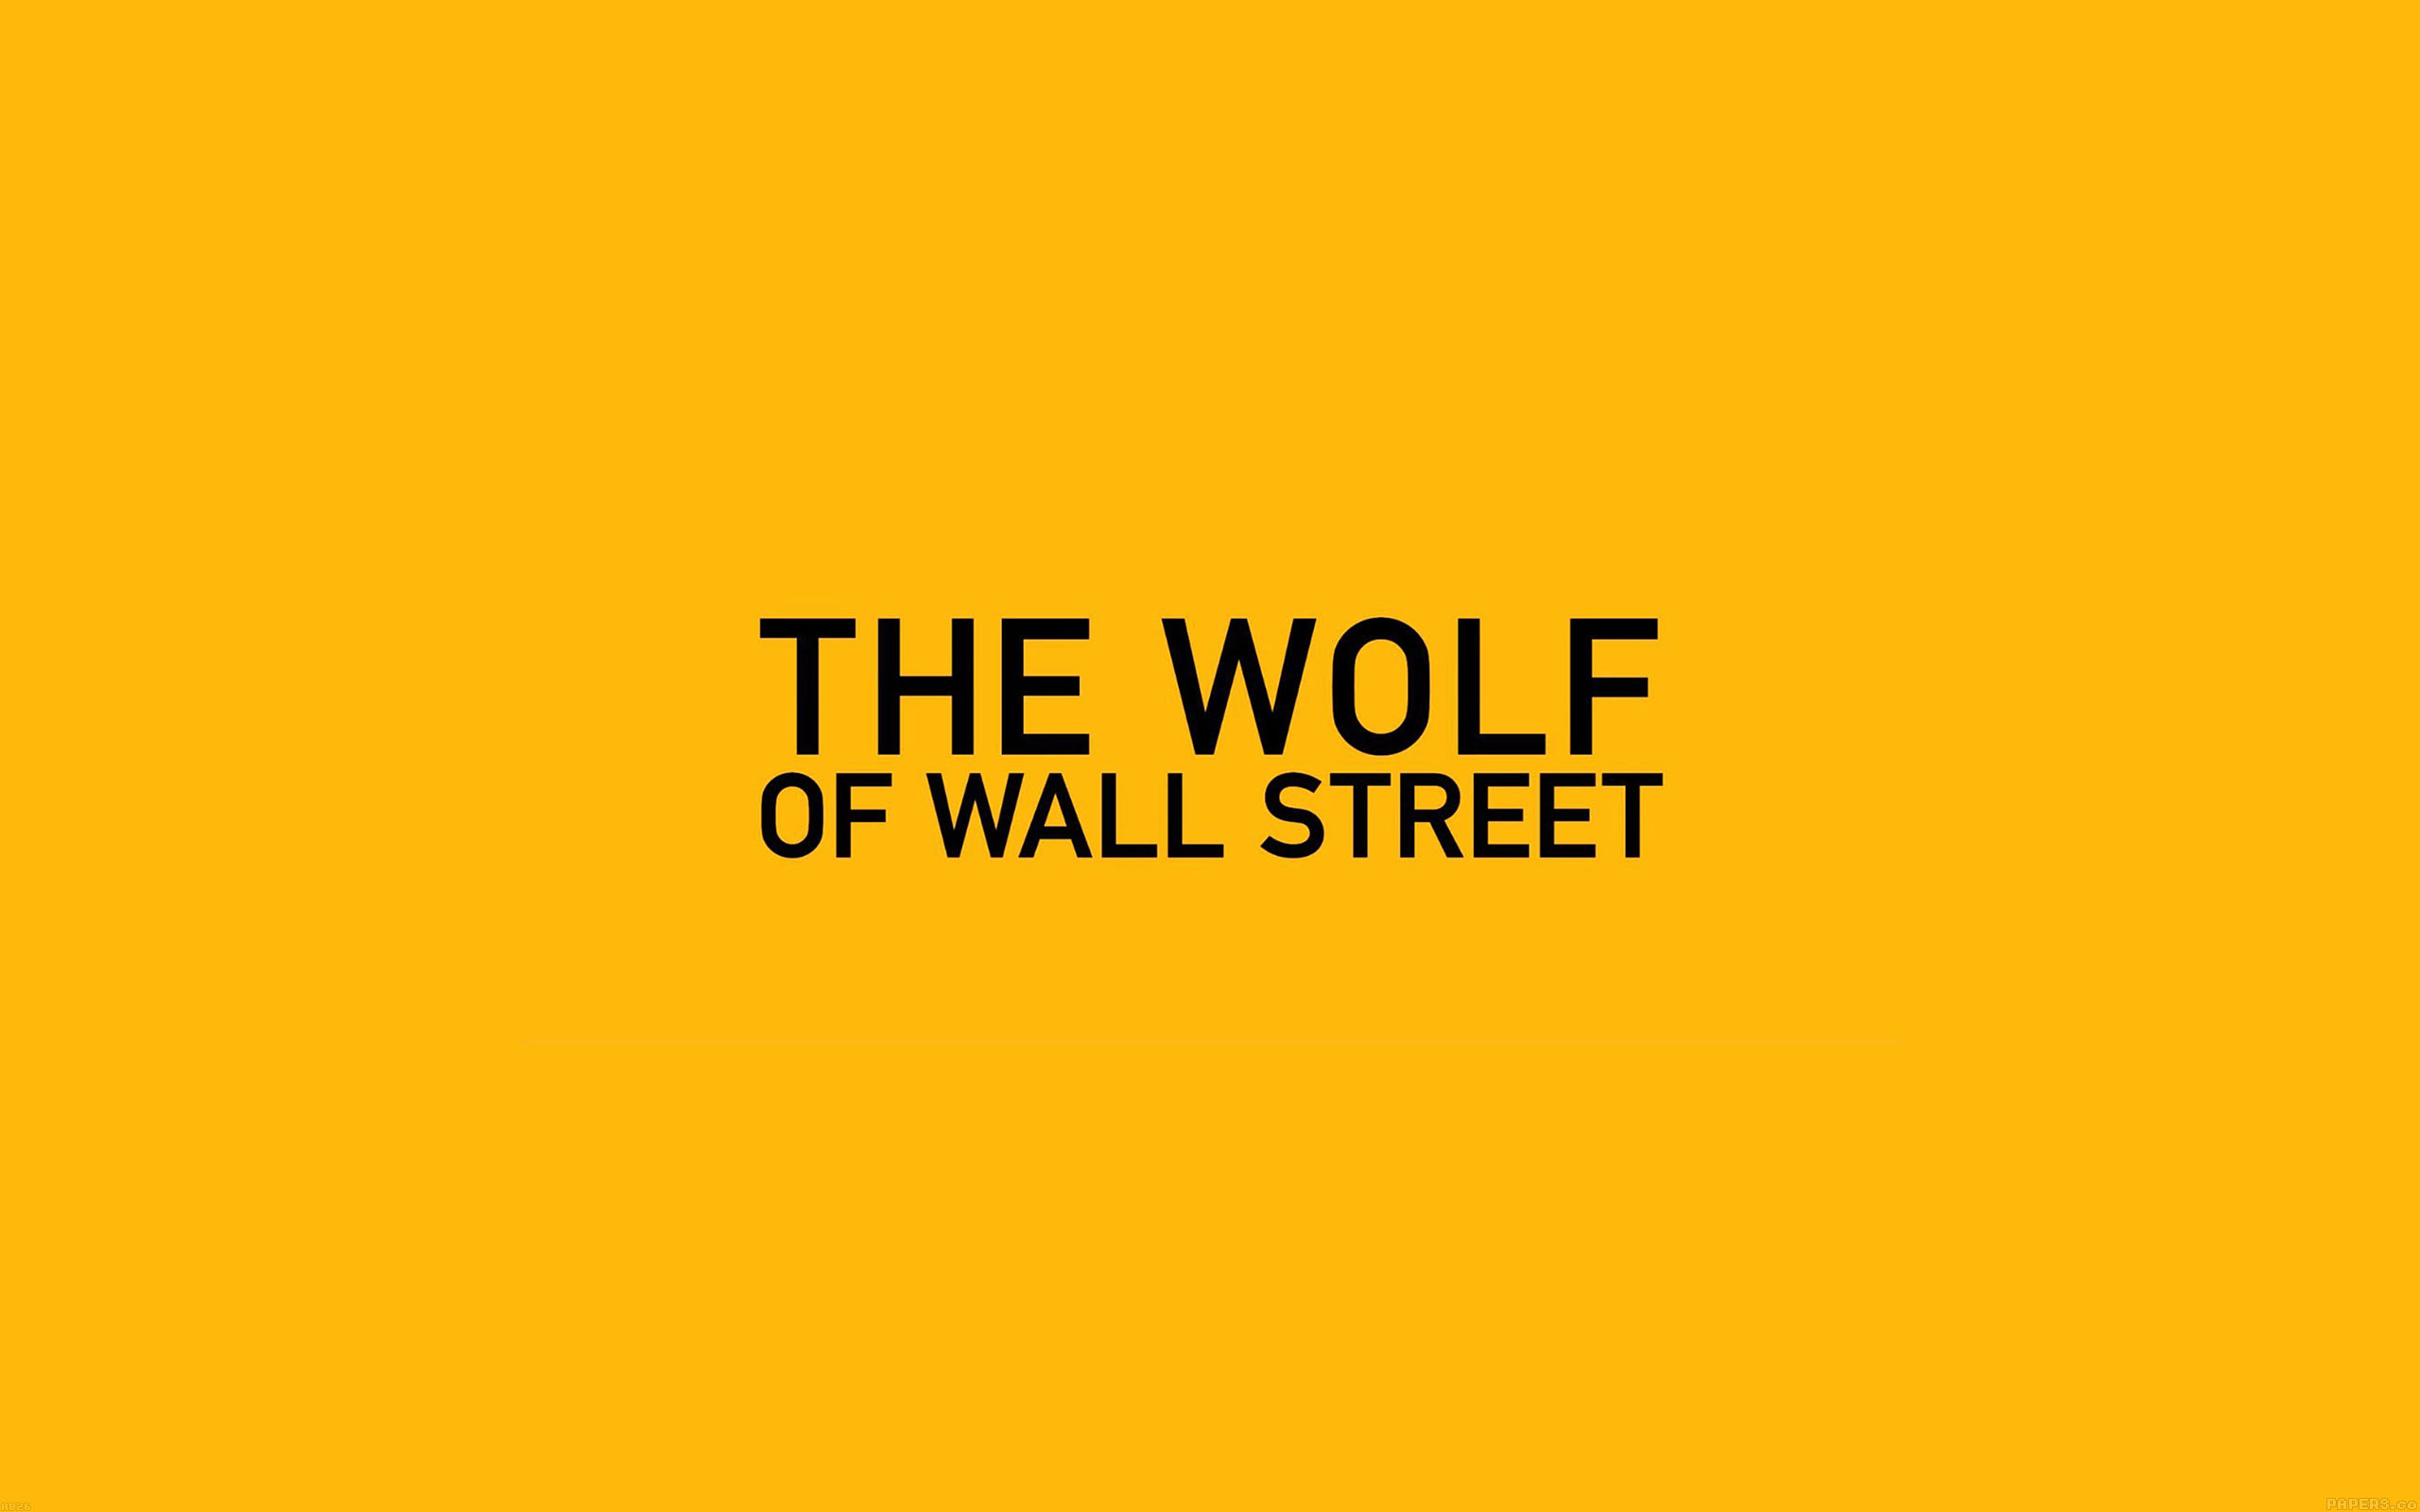 wall street essay Wall street (1987) is based on the bull market of 1985 starring charlie sheen as bud fox, a wall street stockbroker, and michael douglas as gordon gekko, a ruthless stockbroker kingpin the movie has the traditional plotline with a hungry kid impressed by an elder in the business he wants to be in.